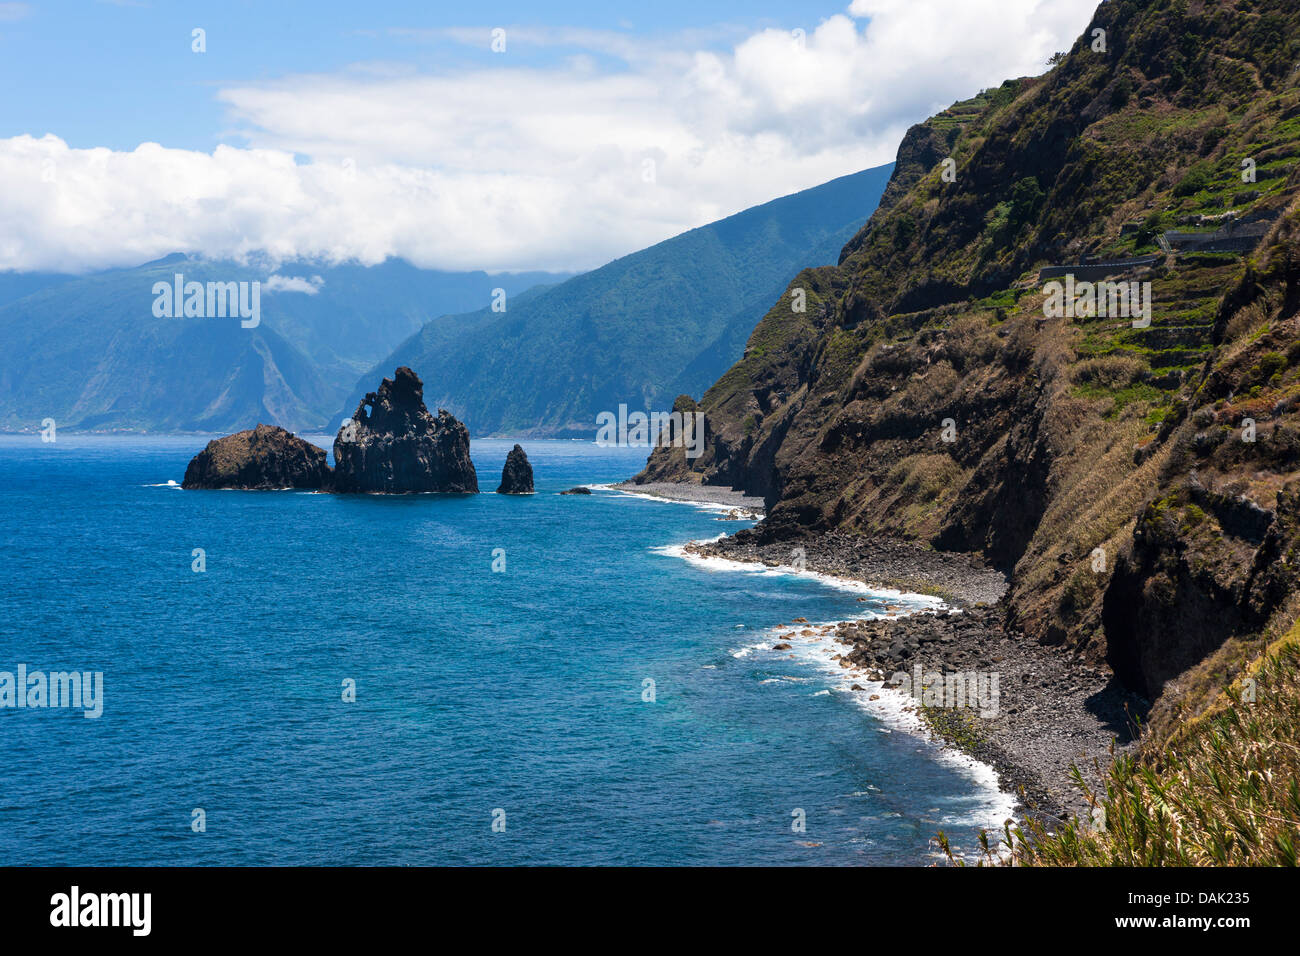 Portugal, View of rock formations at Ilheus da Rib - Stock Image